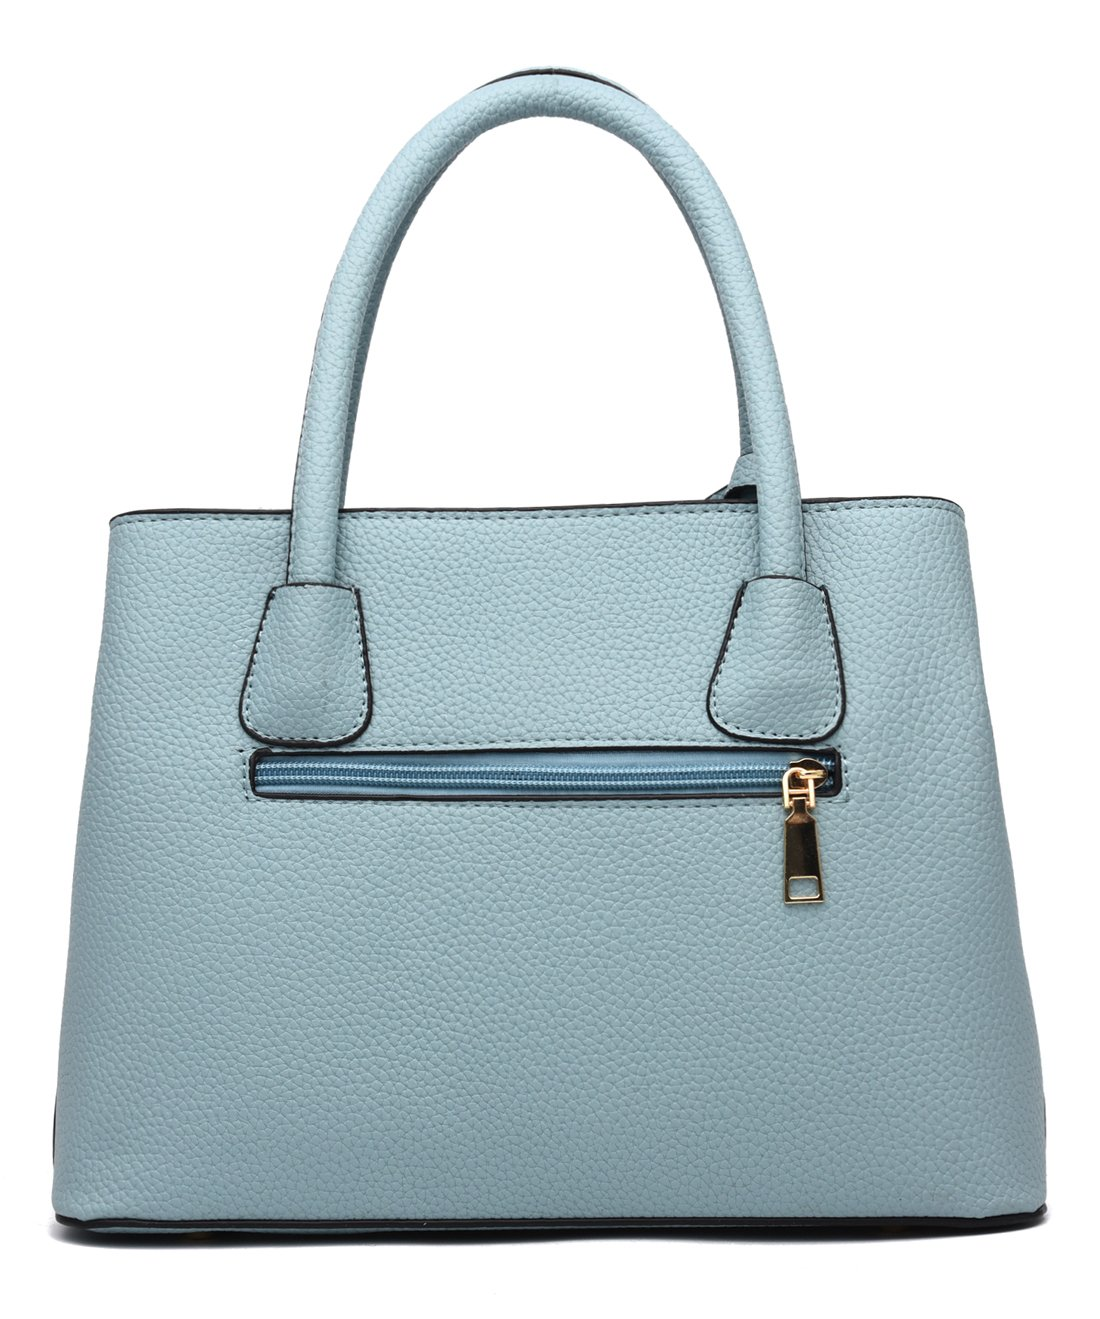 Covelin Women's Top-handle Cross Body Handbag Middle Size Purse Durable Leather Tote Bag Light Blue by Covelin (Image #2)